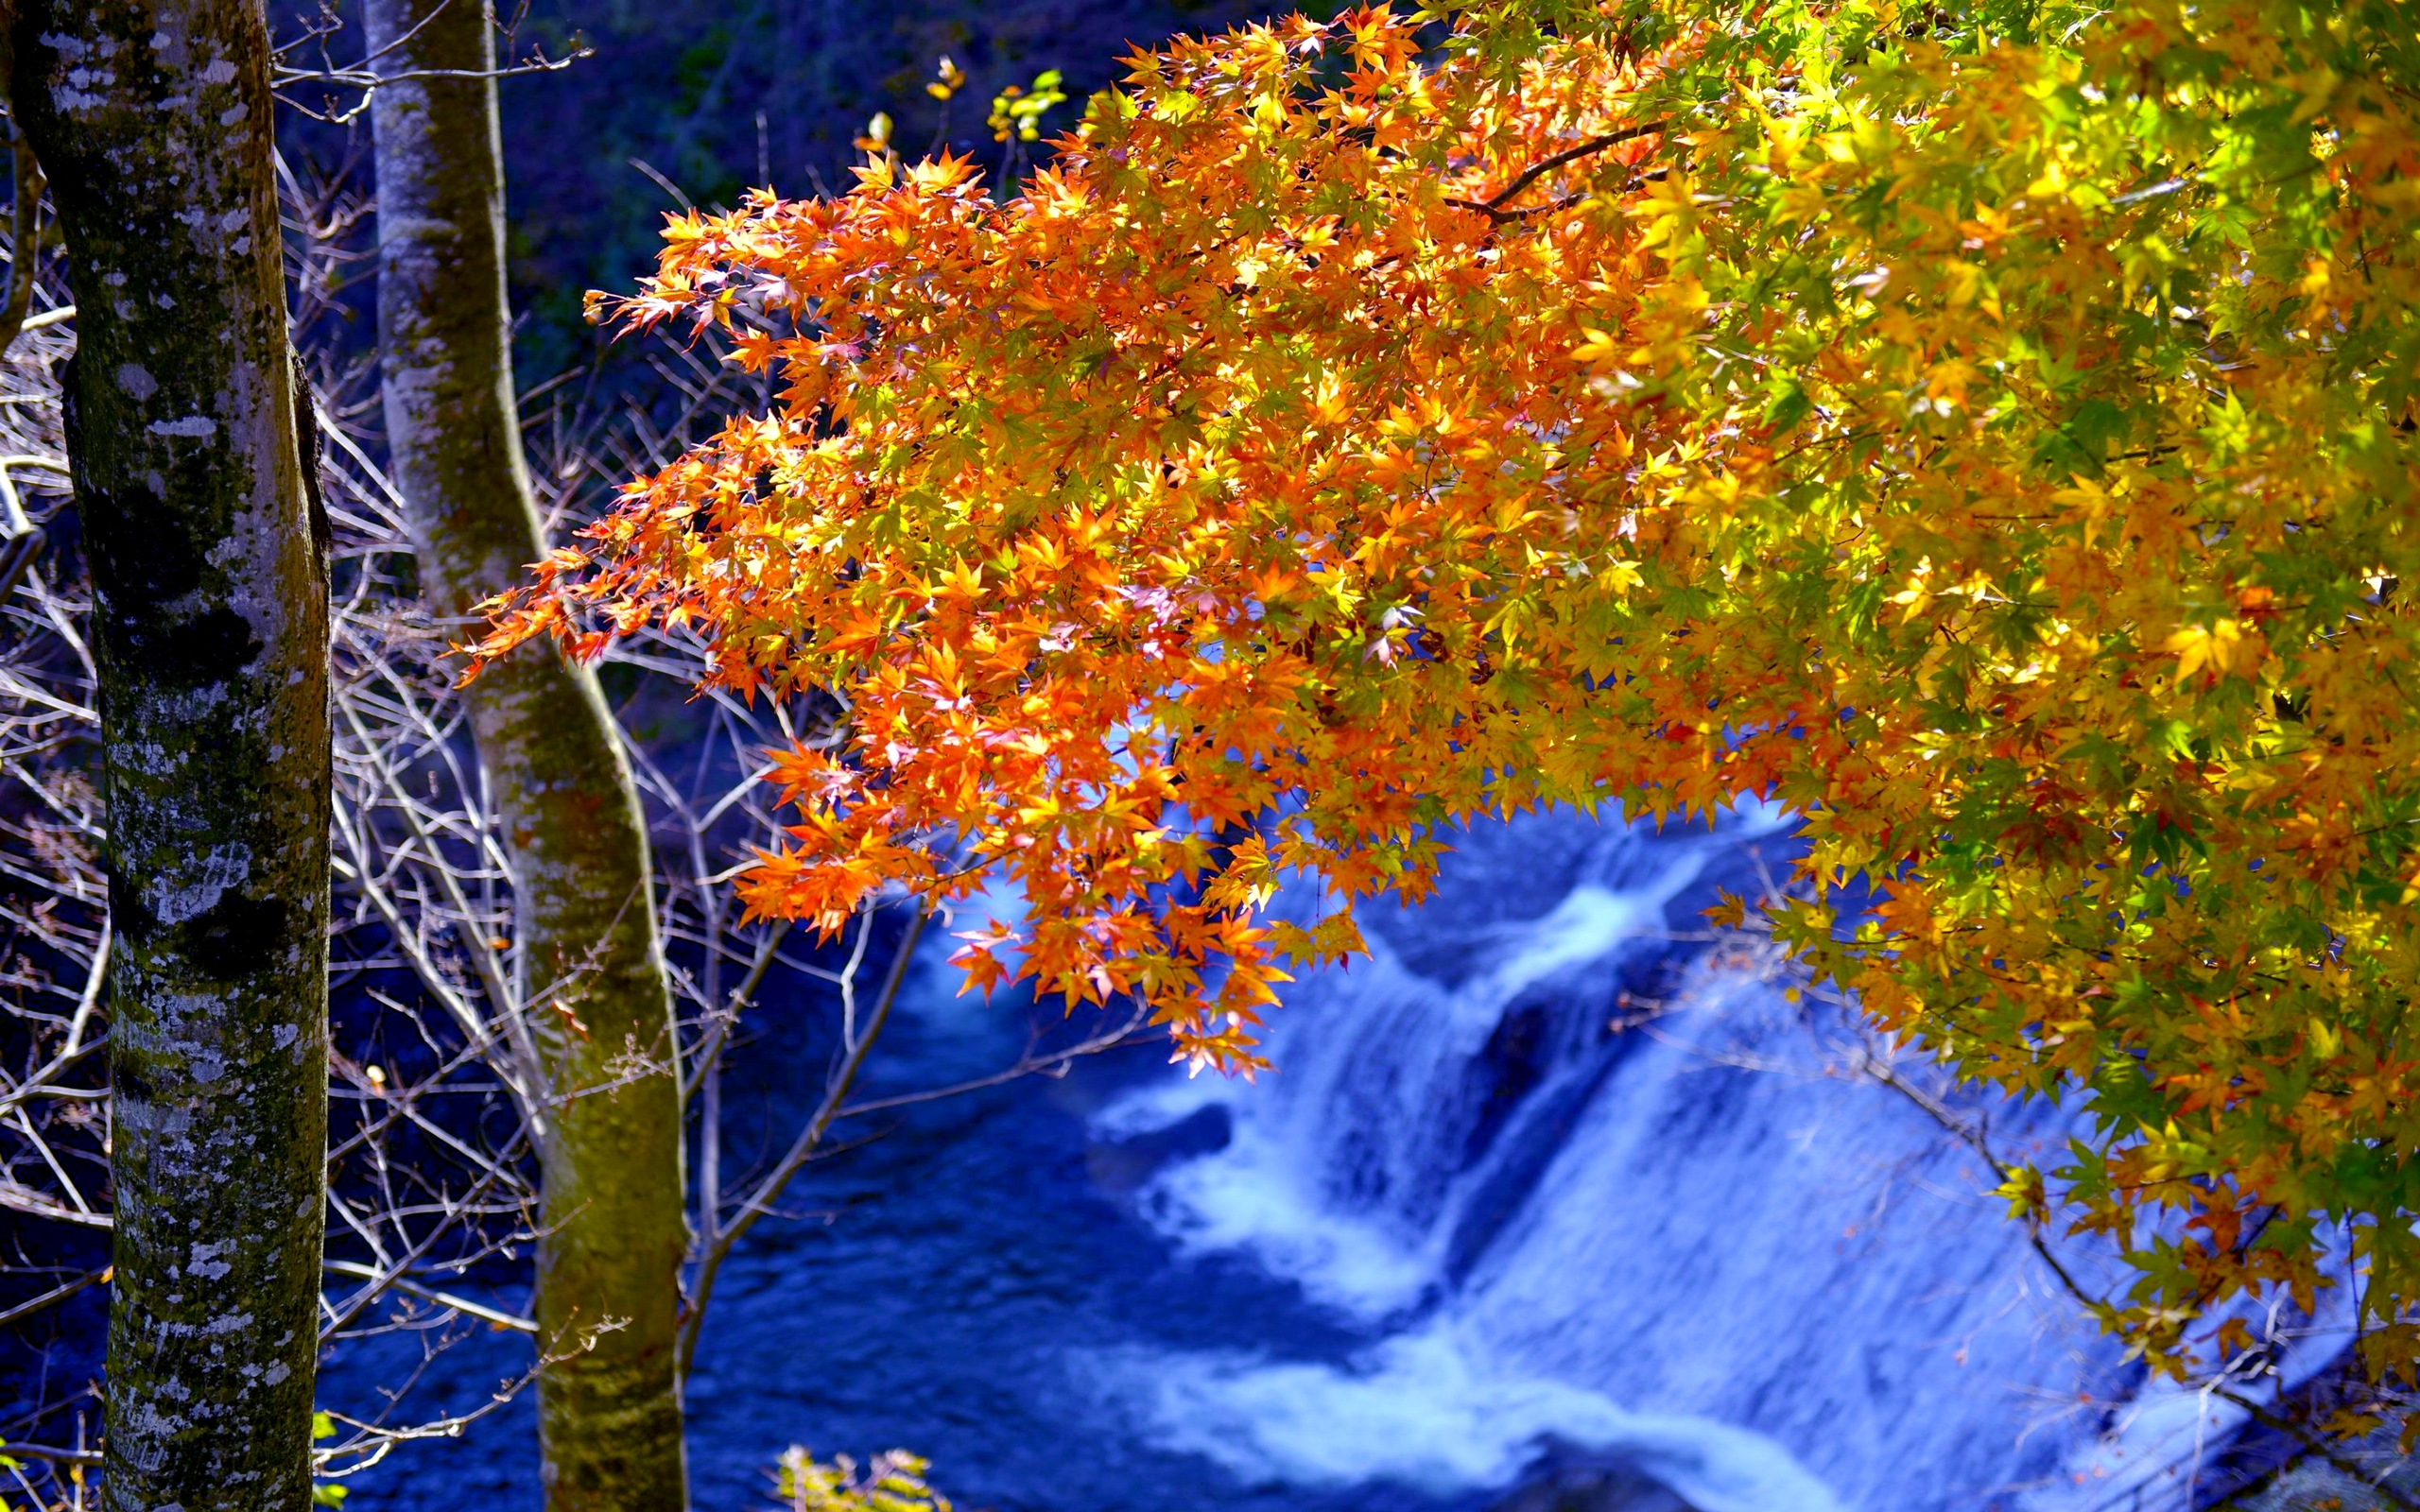 Niagara Falls Wallpaper Iphone Natural Forest Waterfall Falls In Autumn Hd Quality